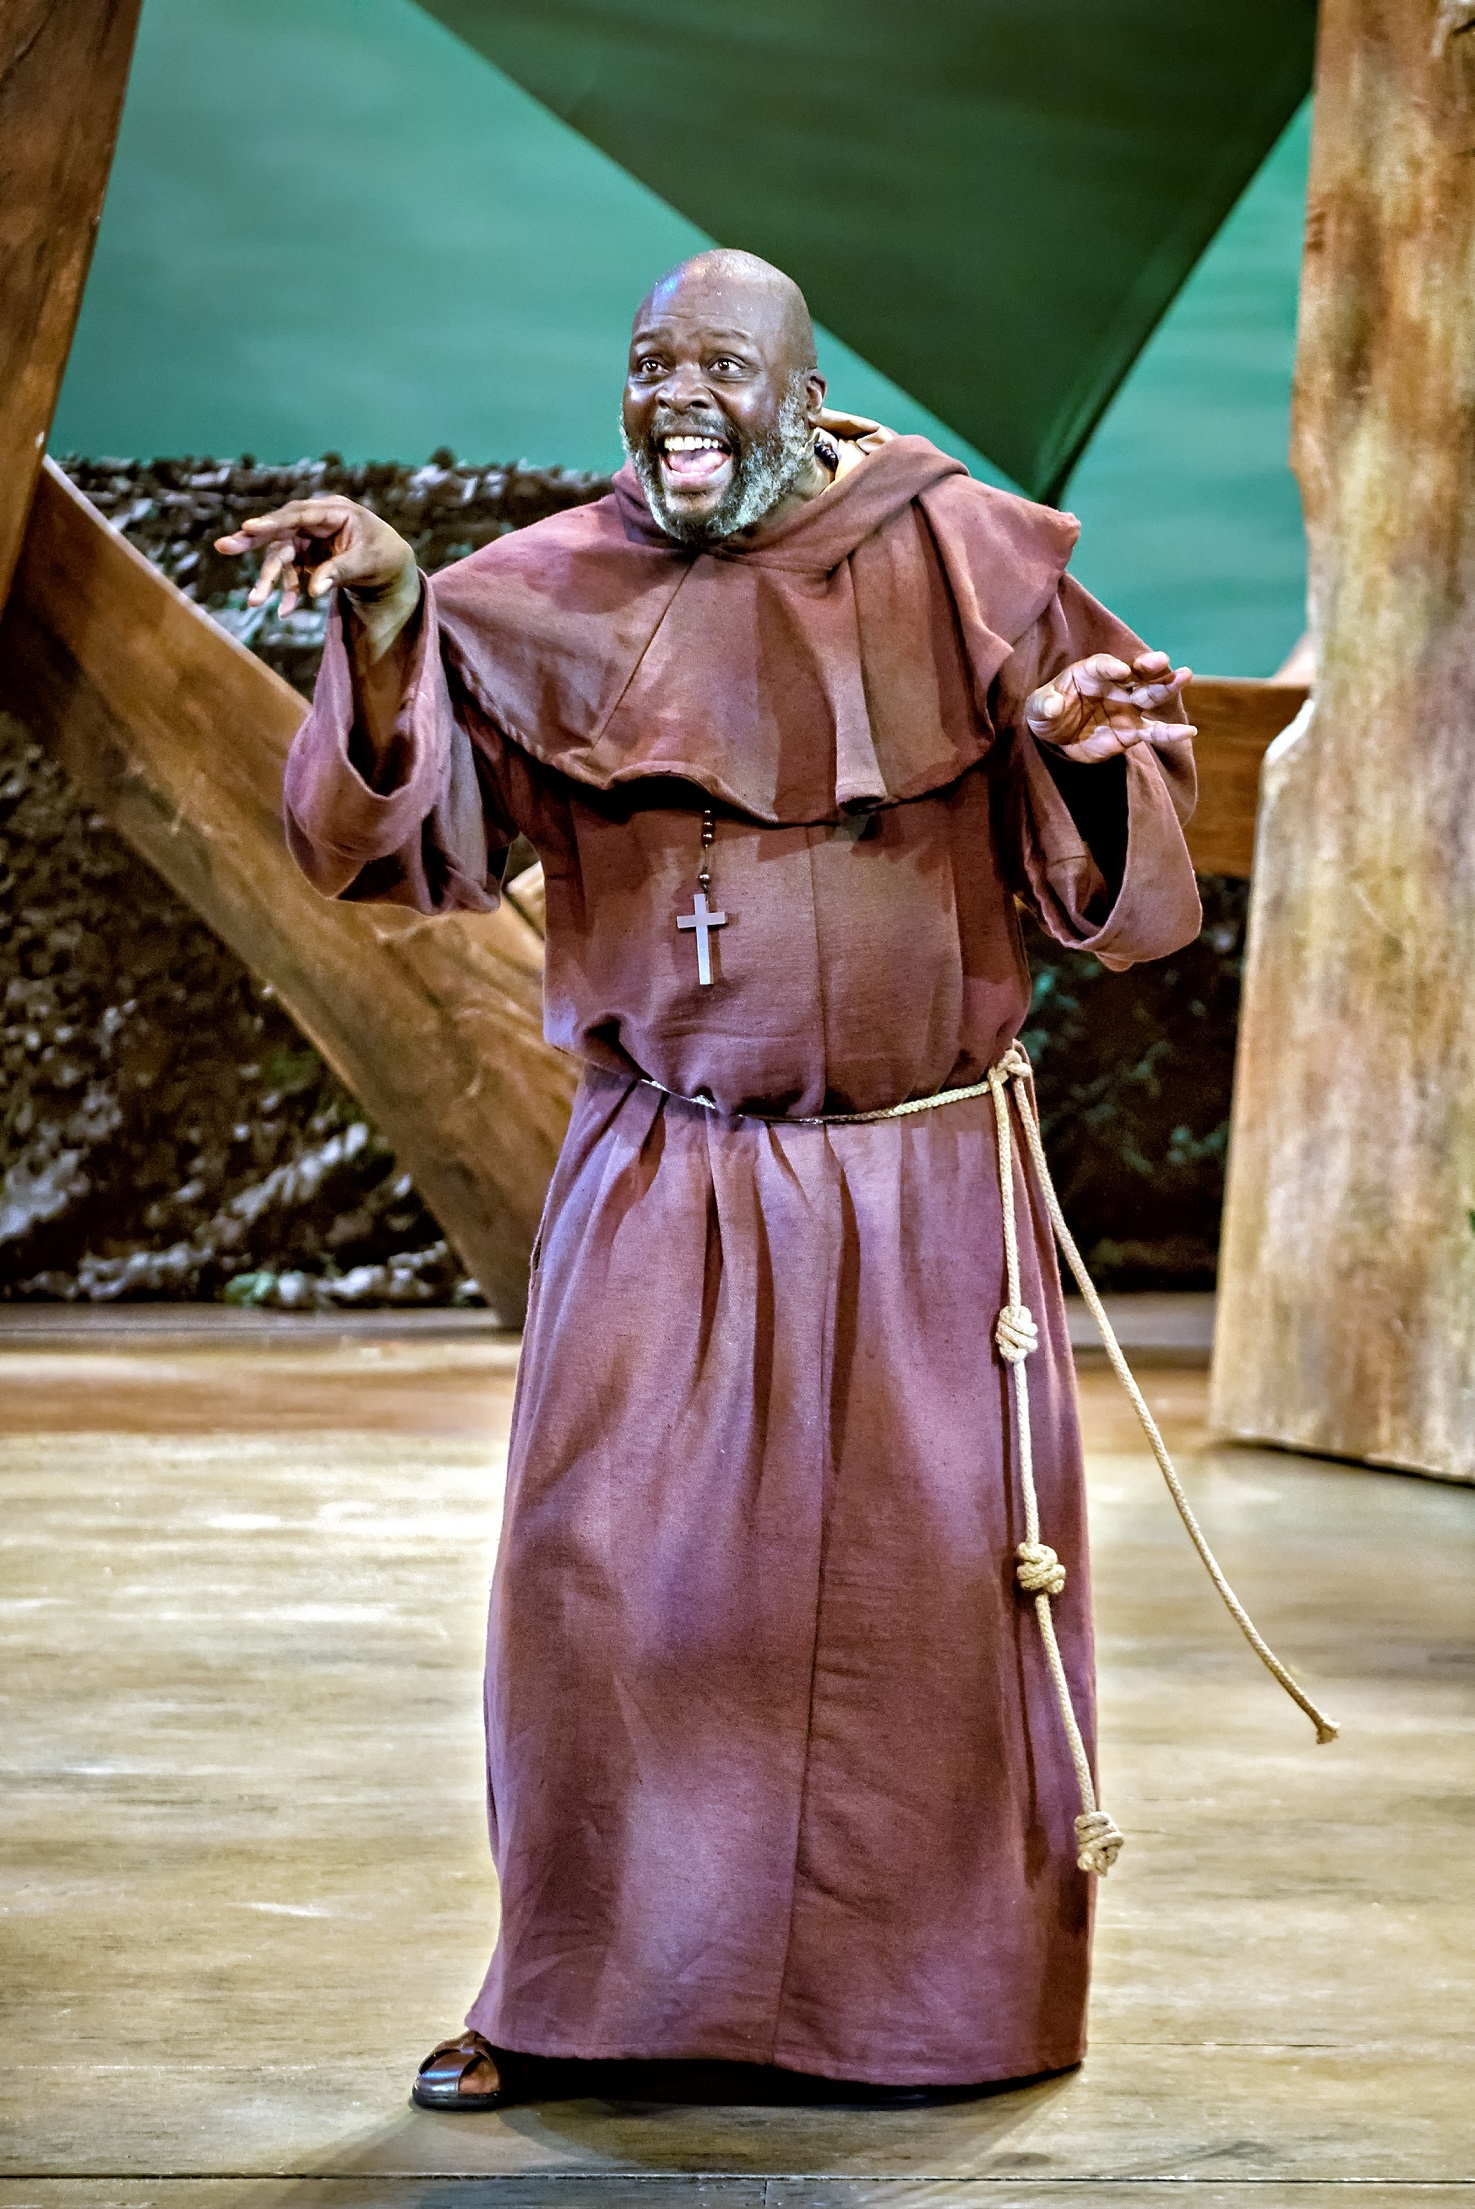 Trevor A Toussaint as Friar Tuck in Robin Hood The Arrow of Destiny. Photo Anthony Robling